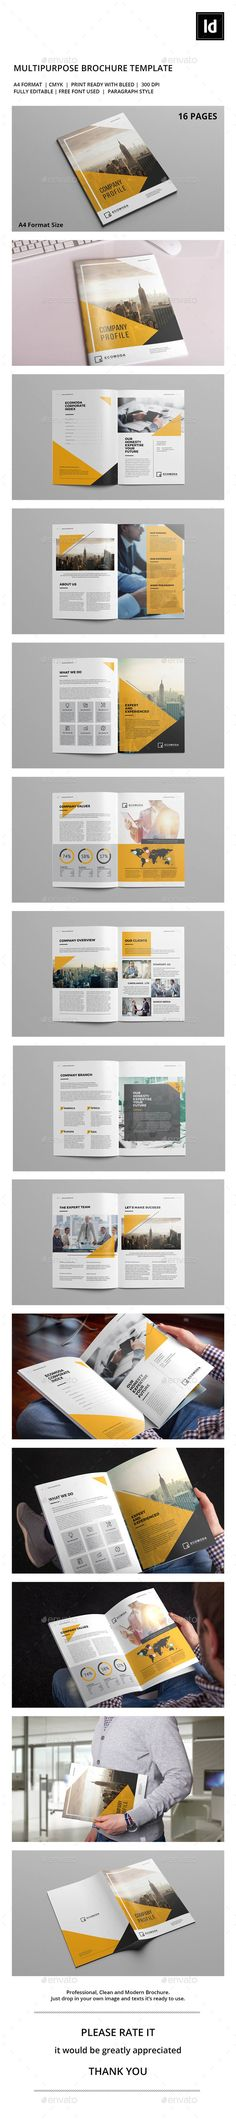 Ecomoda Company Profile Brochure Template InDesign INDD. Download here: https://graphicriver.net/item/ecomoda-company-profile/17518349?ref=ksioks